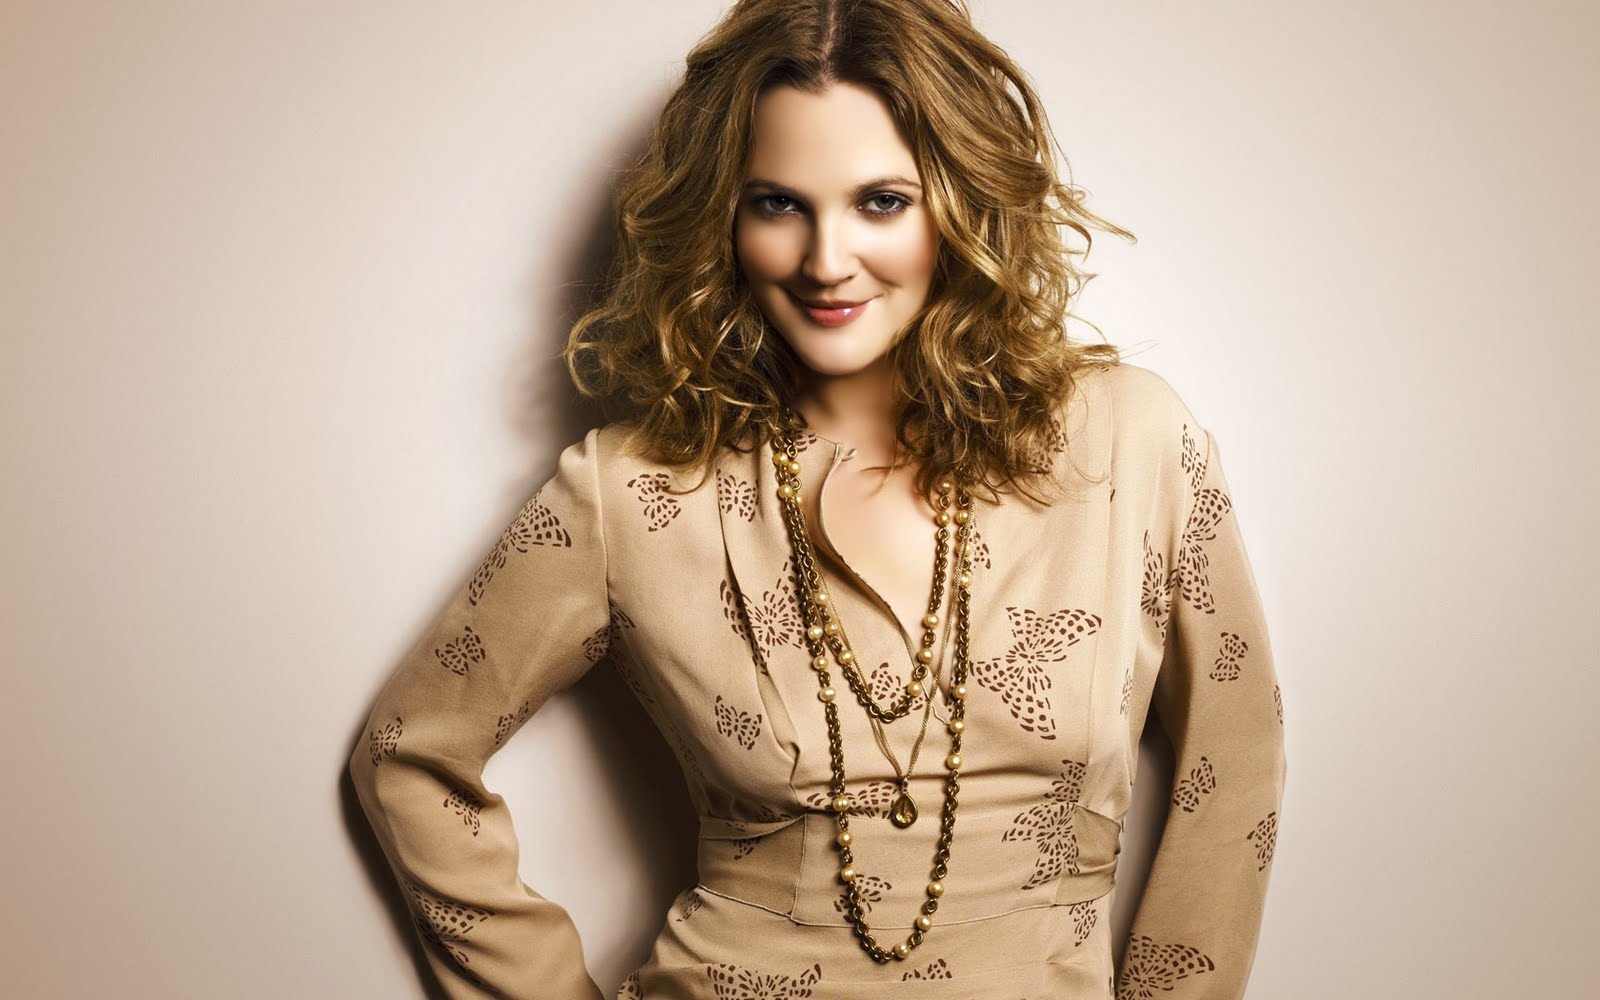 Drew Barrymore Wallpapers Hot Pictures Wallpapers